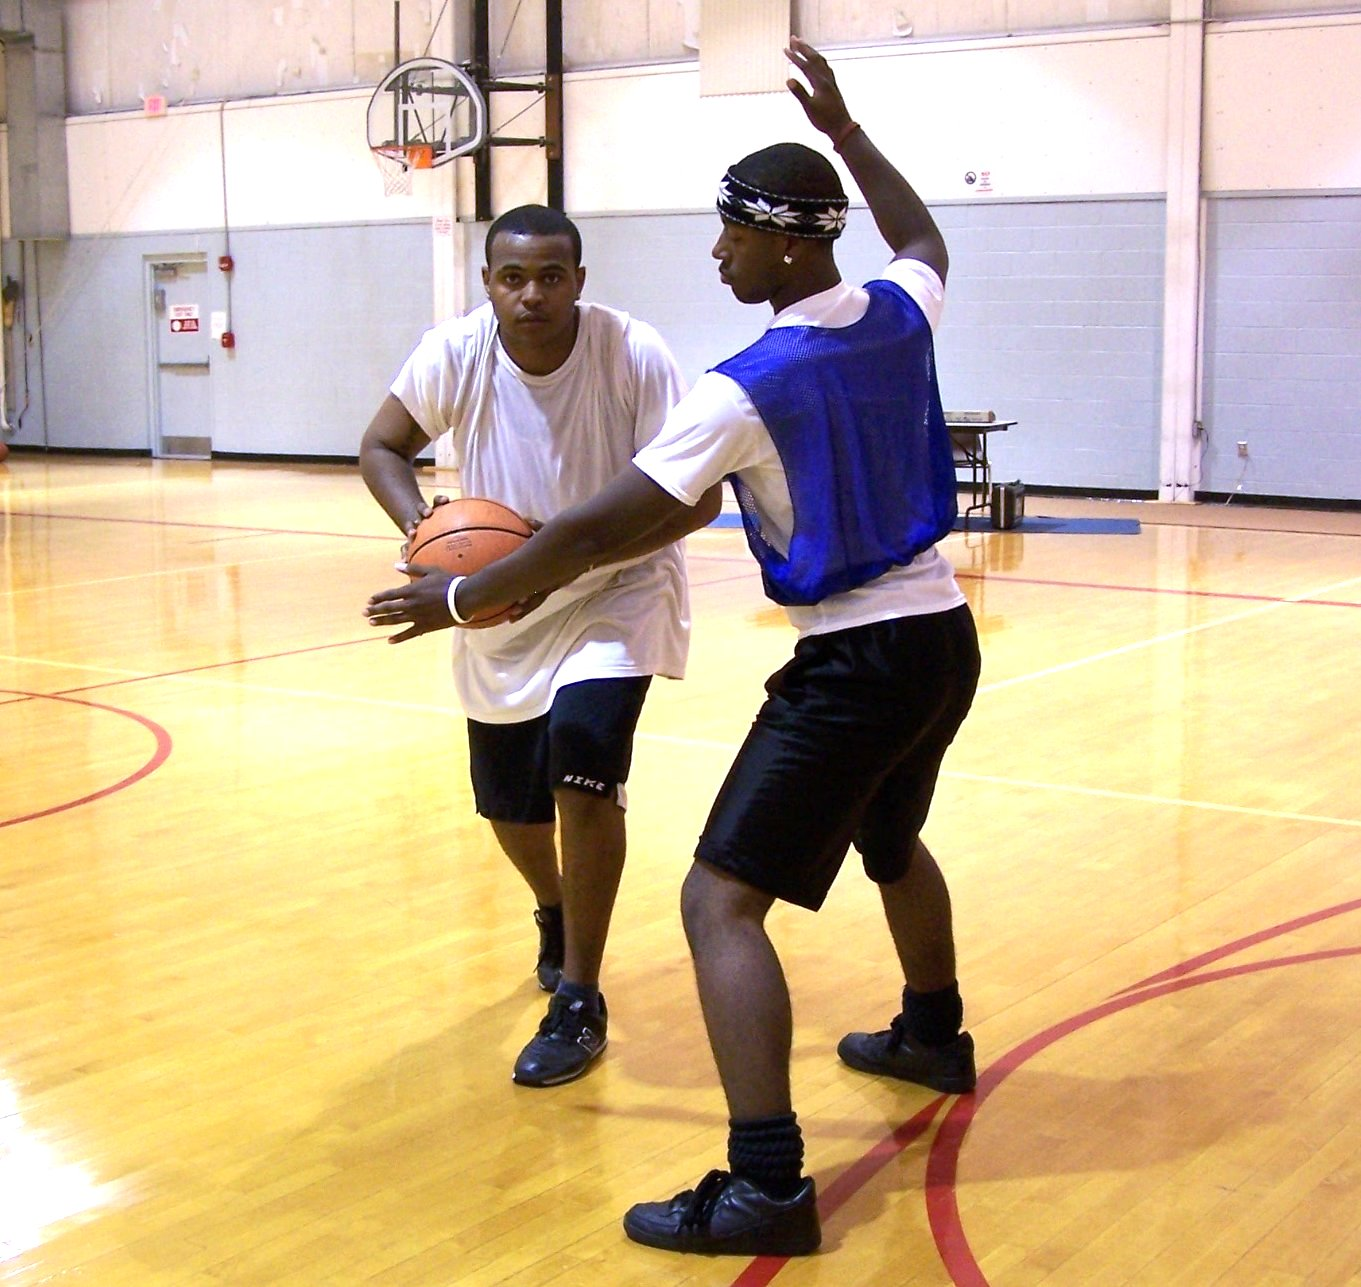 Man To Man Defense In Youth Basketball